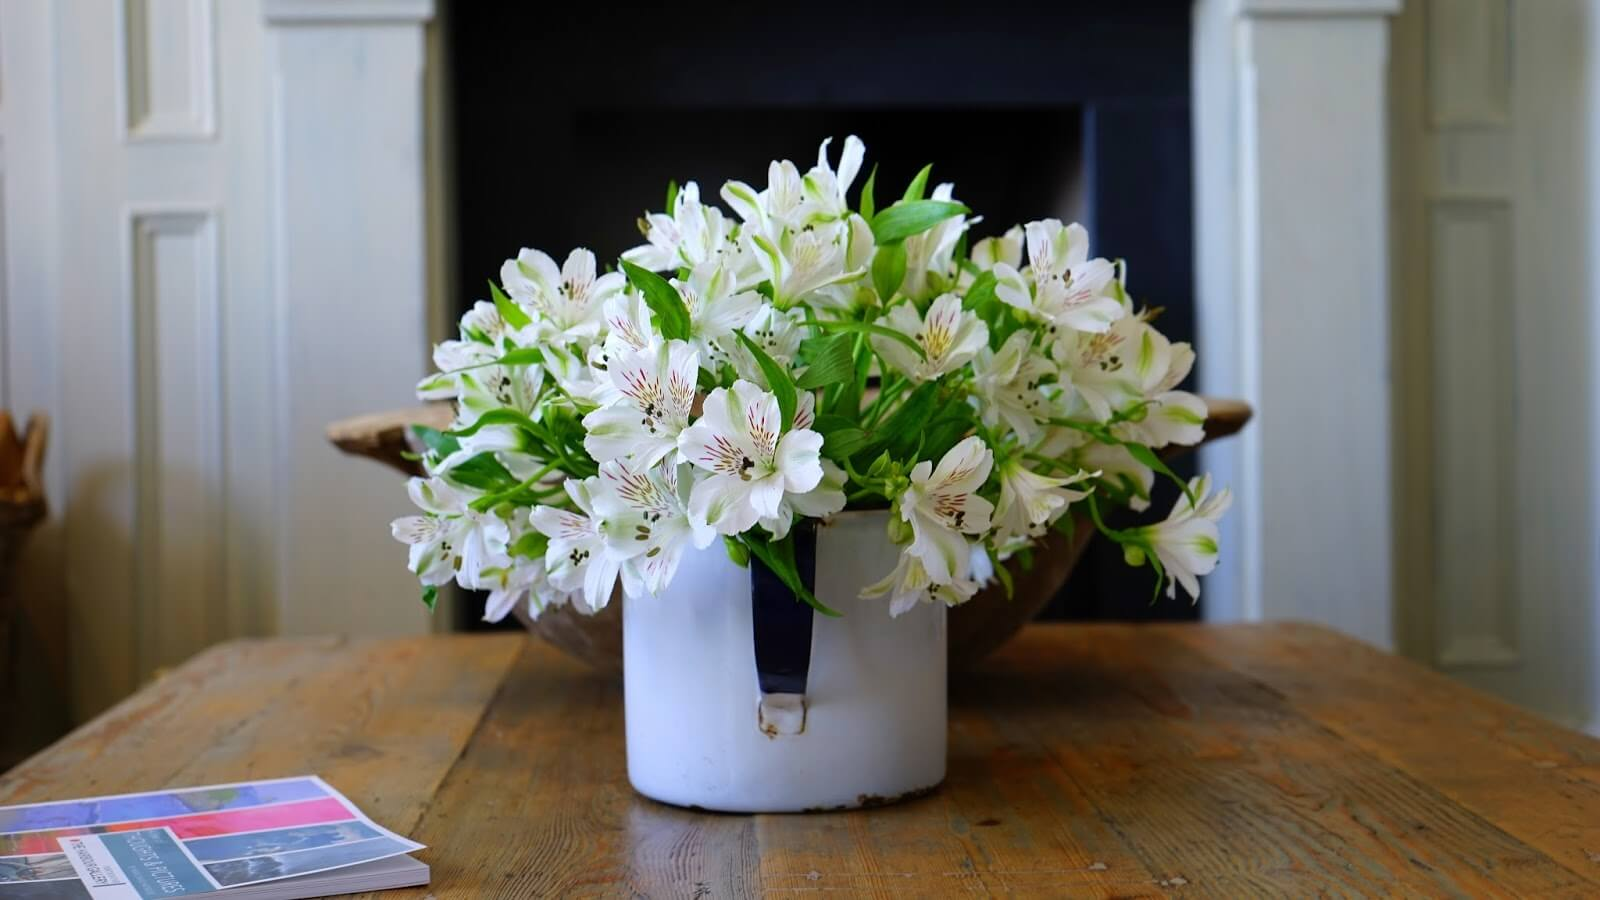 home maintenance checklist - beautiful white flowers in a vase on a wooden table